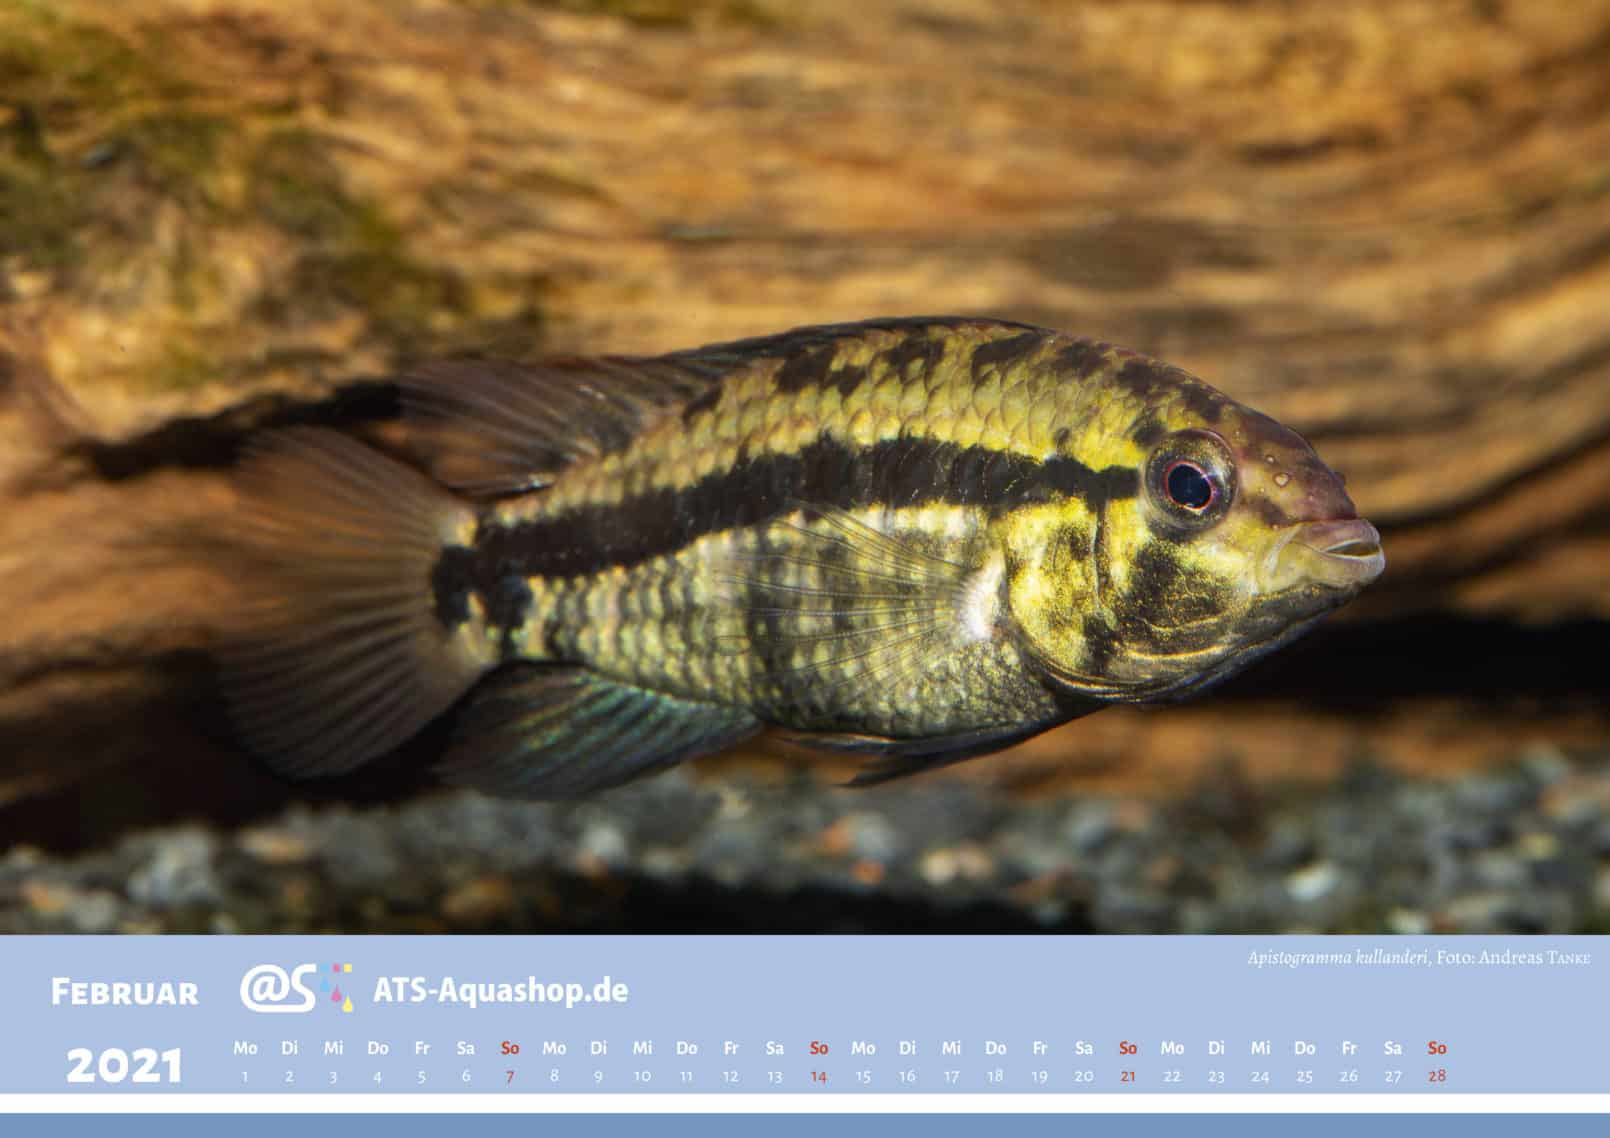 ATS-Aquashop Annual Photo calendar for 2021 DIN A3 (February): Apistogramma kullanderi